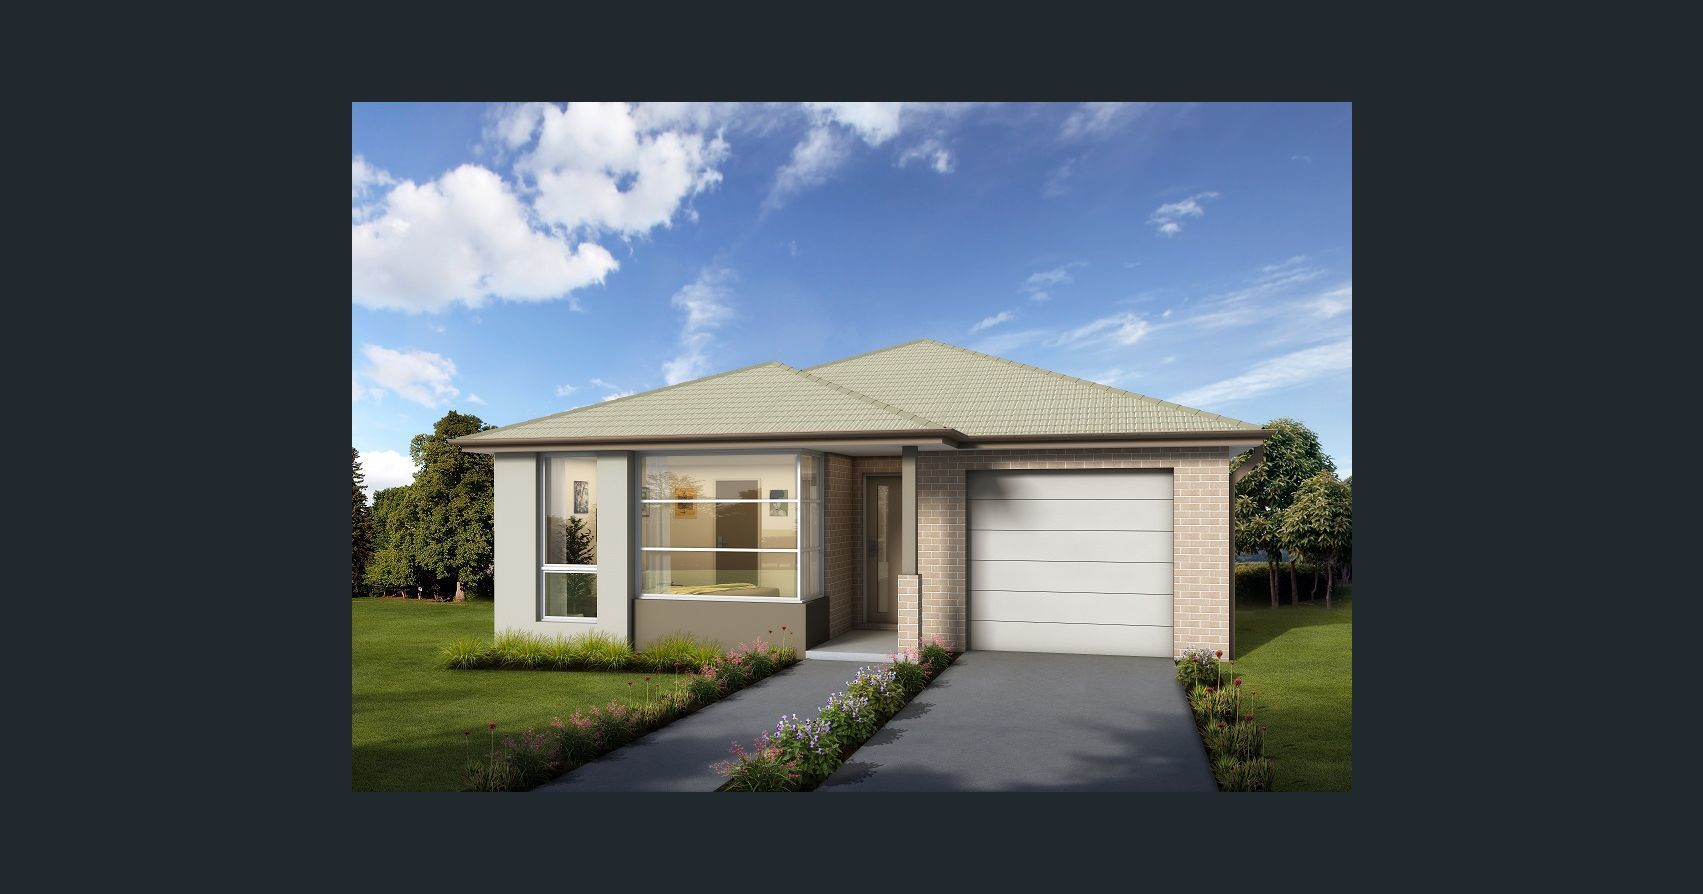 Lot 1266 205 Seventh Ave, Austral NSW 2179, Image 0